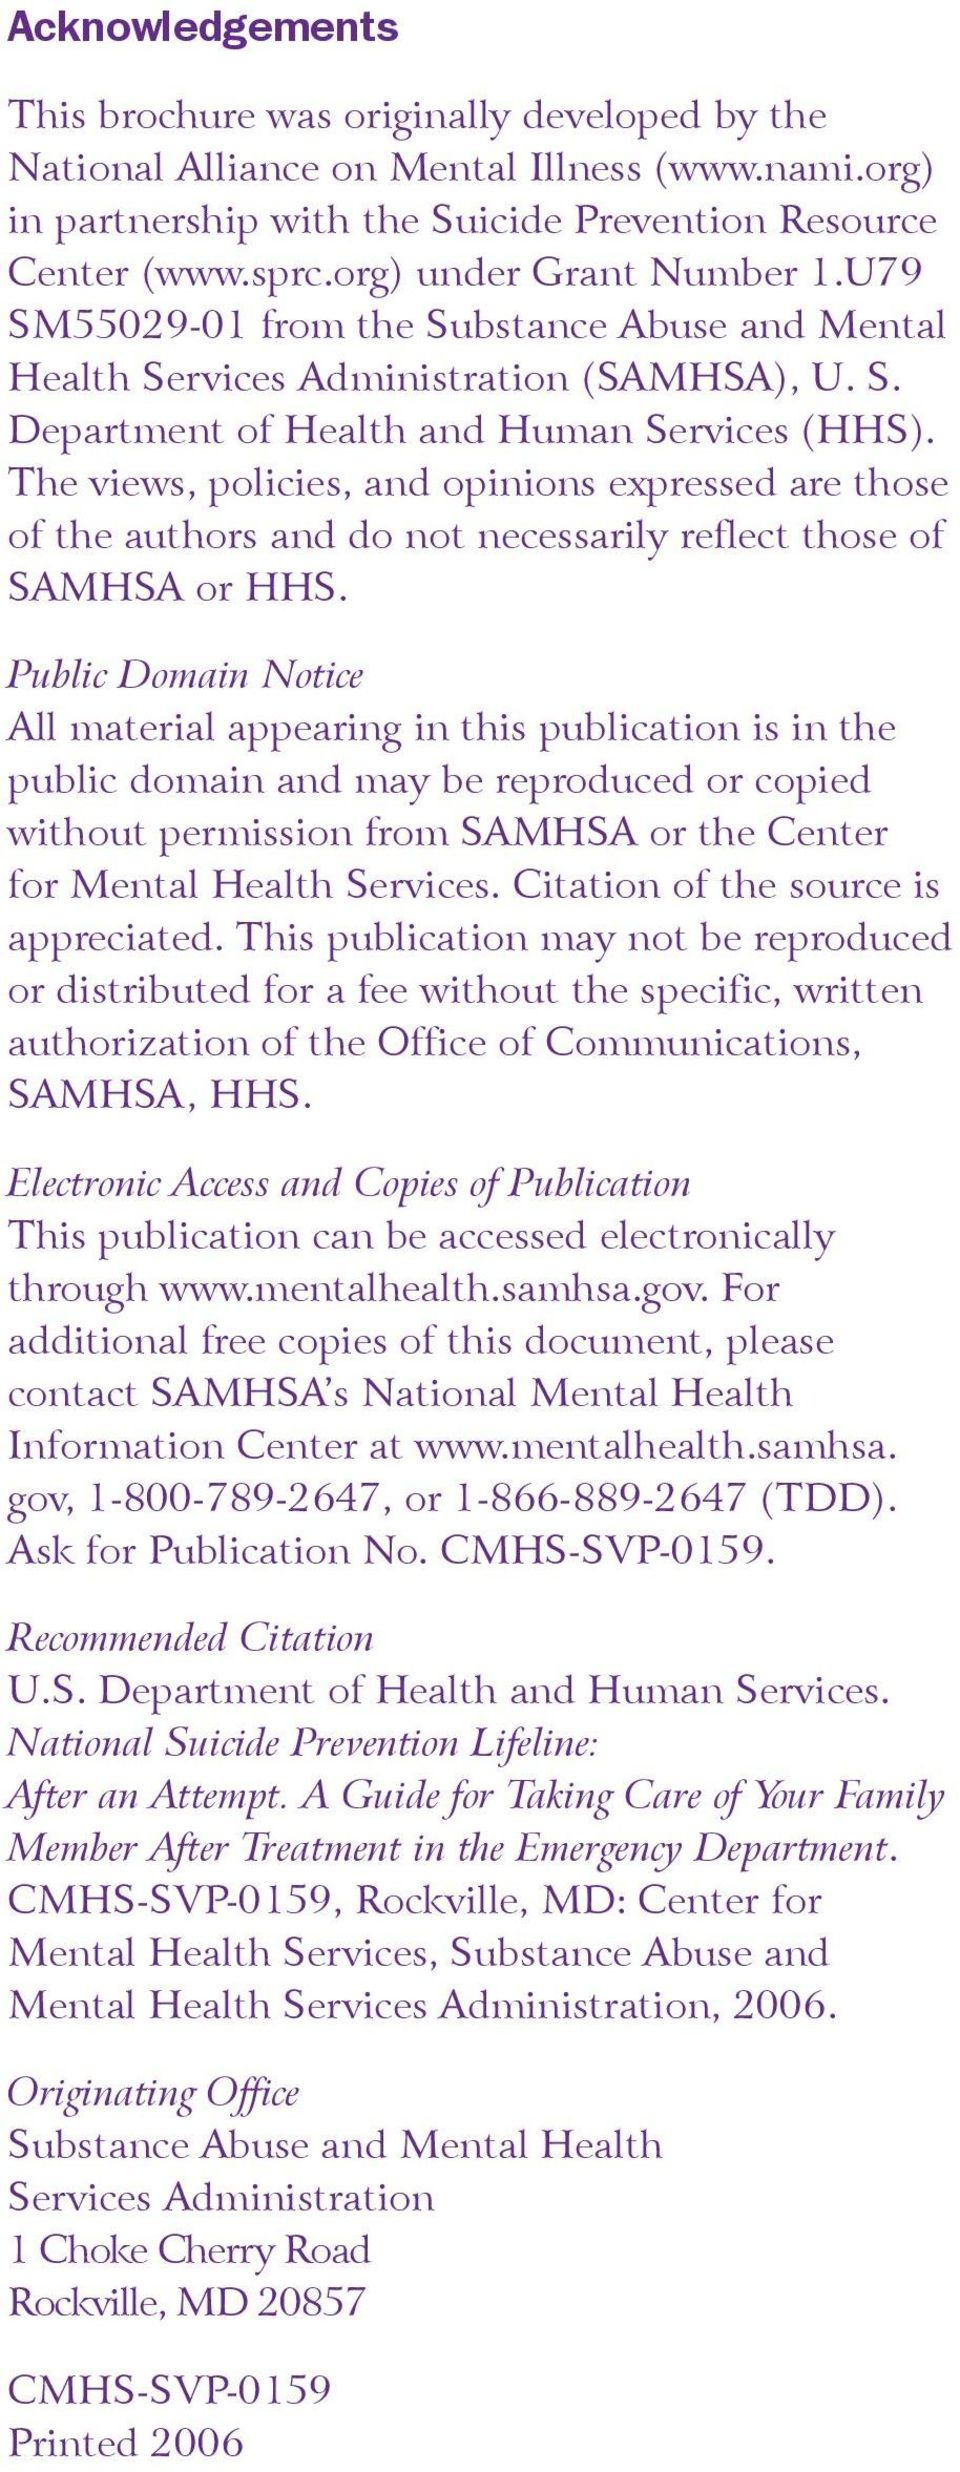 The views, policies, and opinions expressed are those of the authors and do not necessarily reflect those of SAMHSA or HHS.